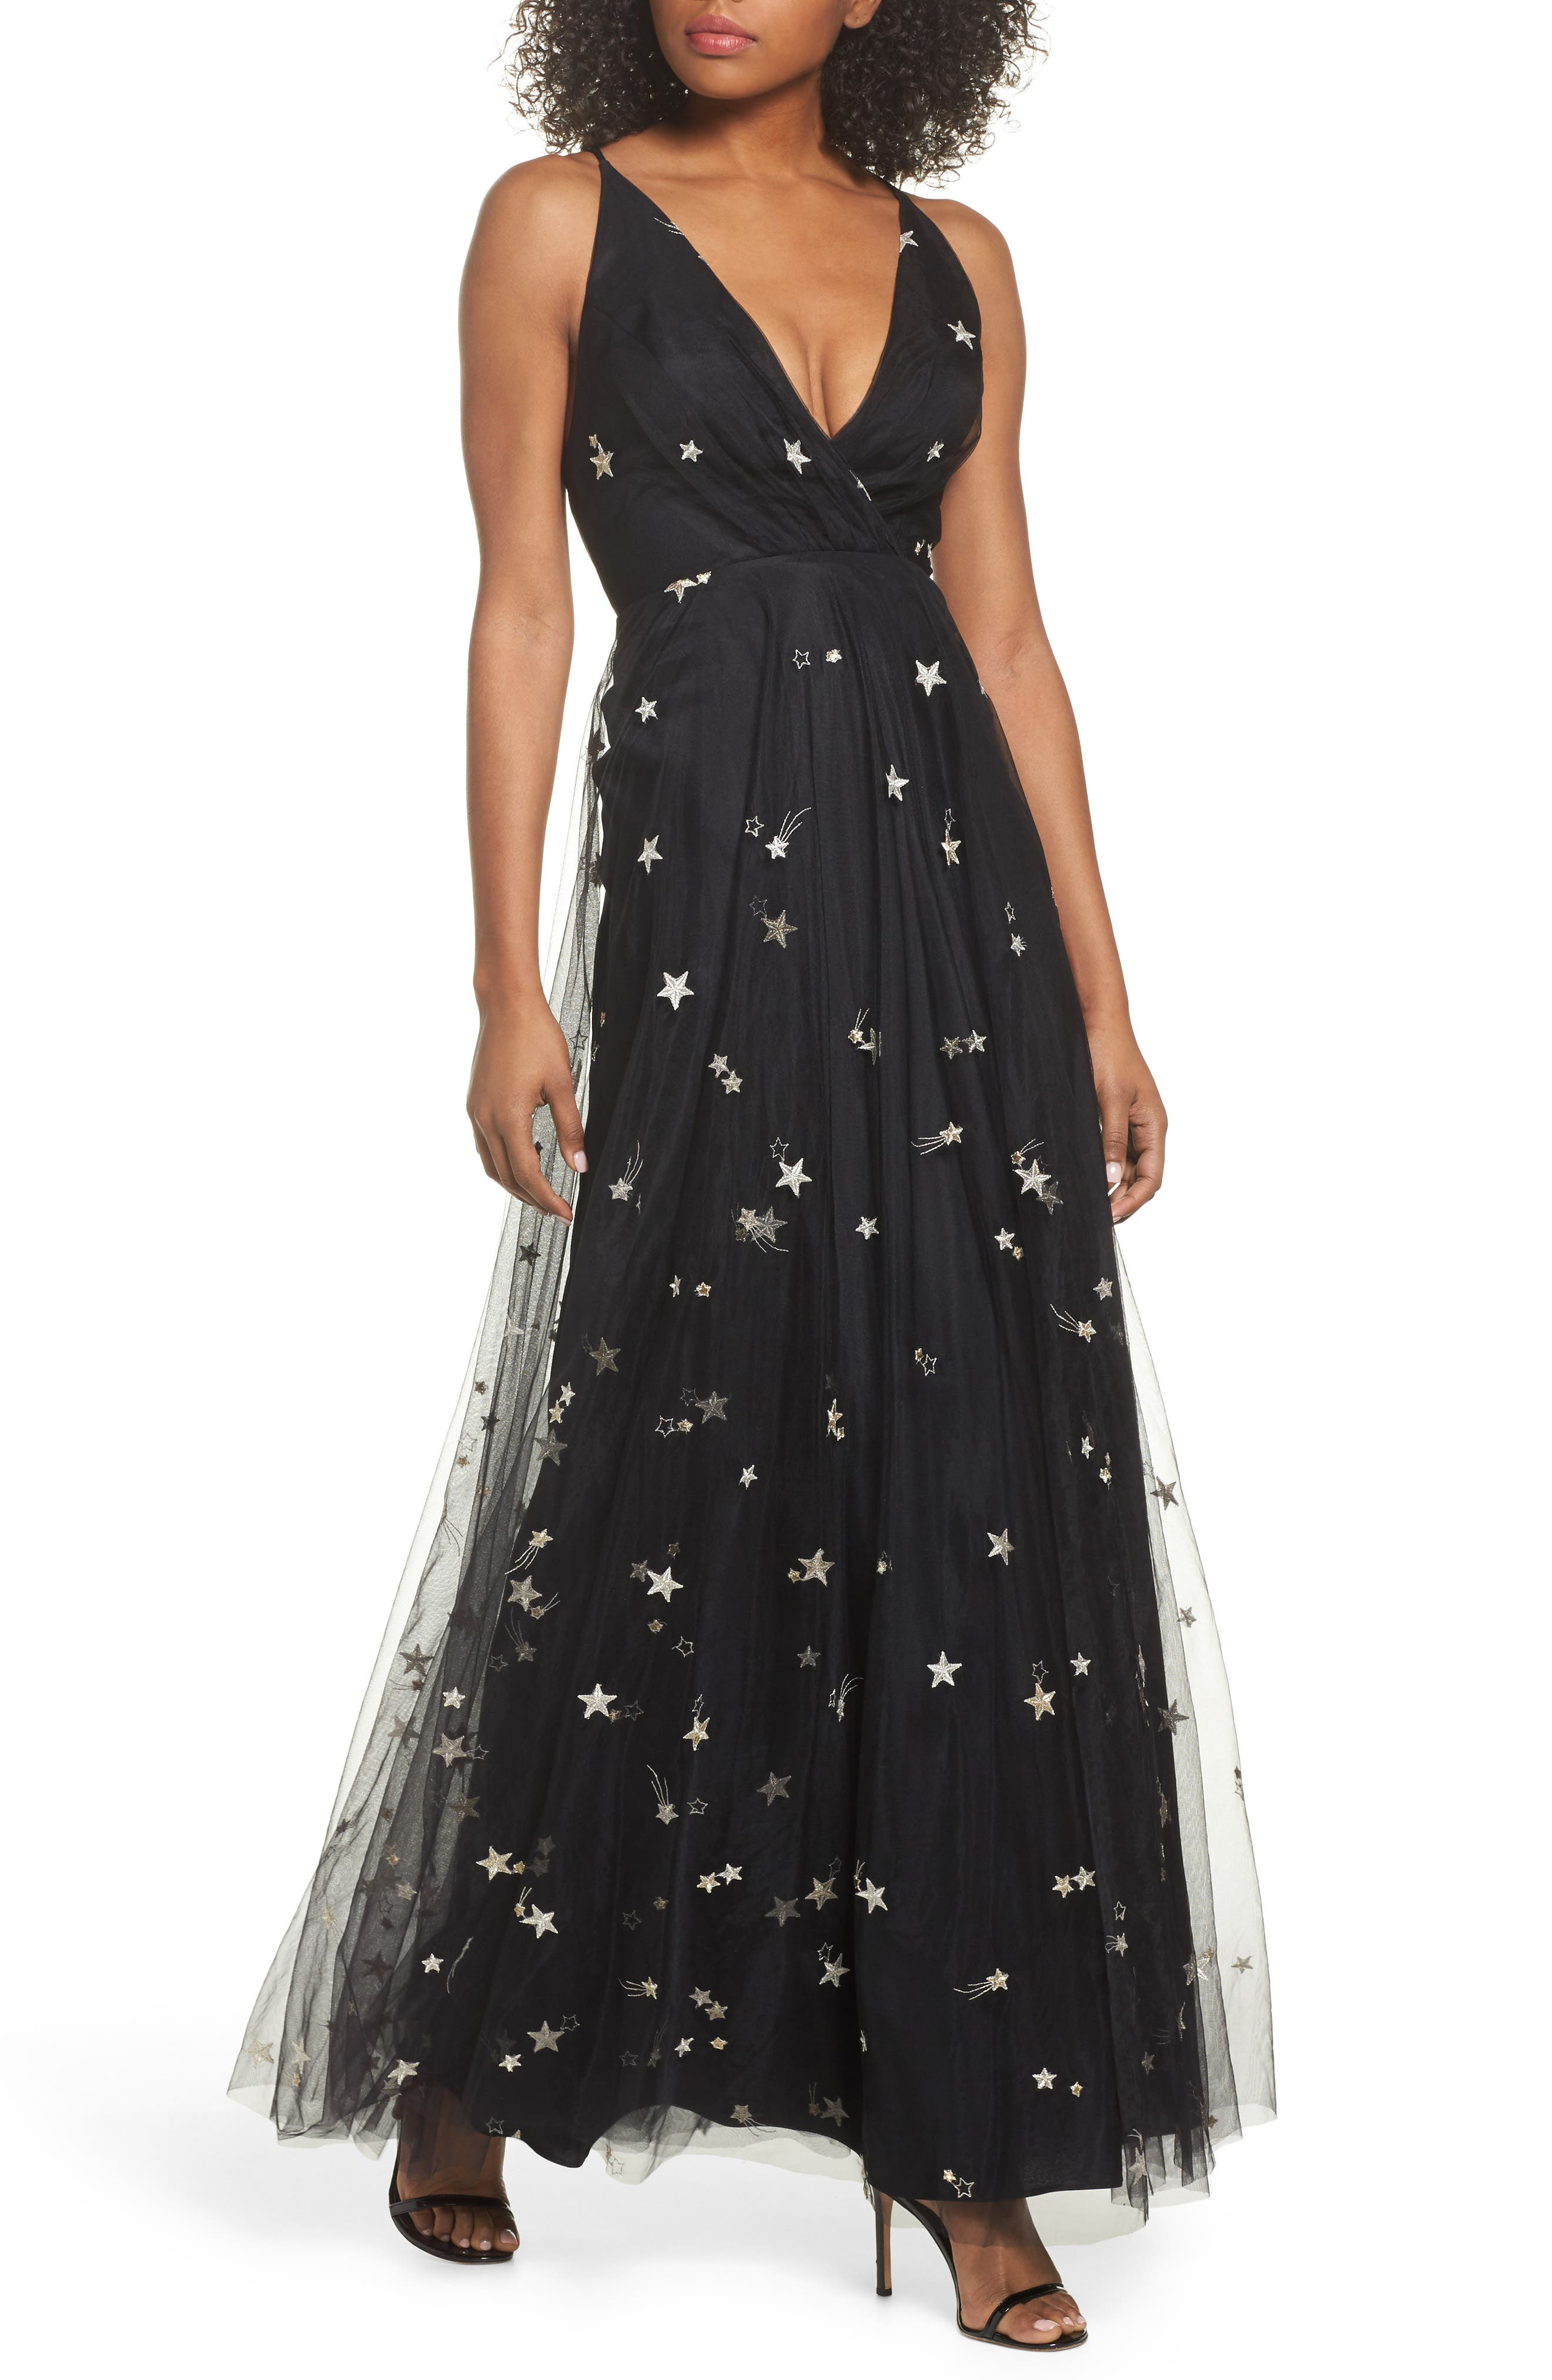 Chelsea Starry Night Embroidered Halter Maxi Dress,                             Main thumbnail 1, color,                             Black/ Metallic